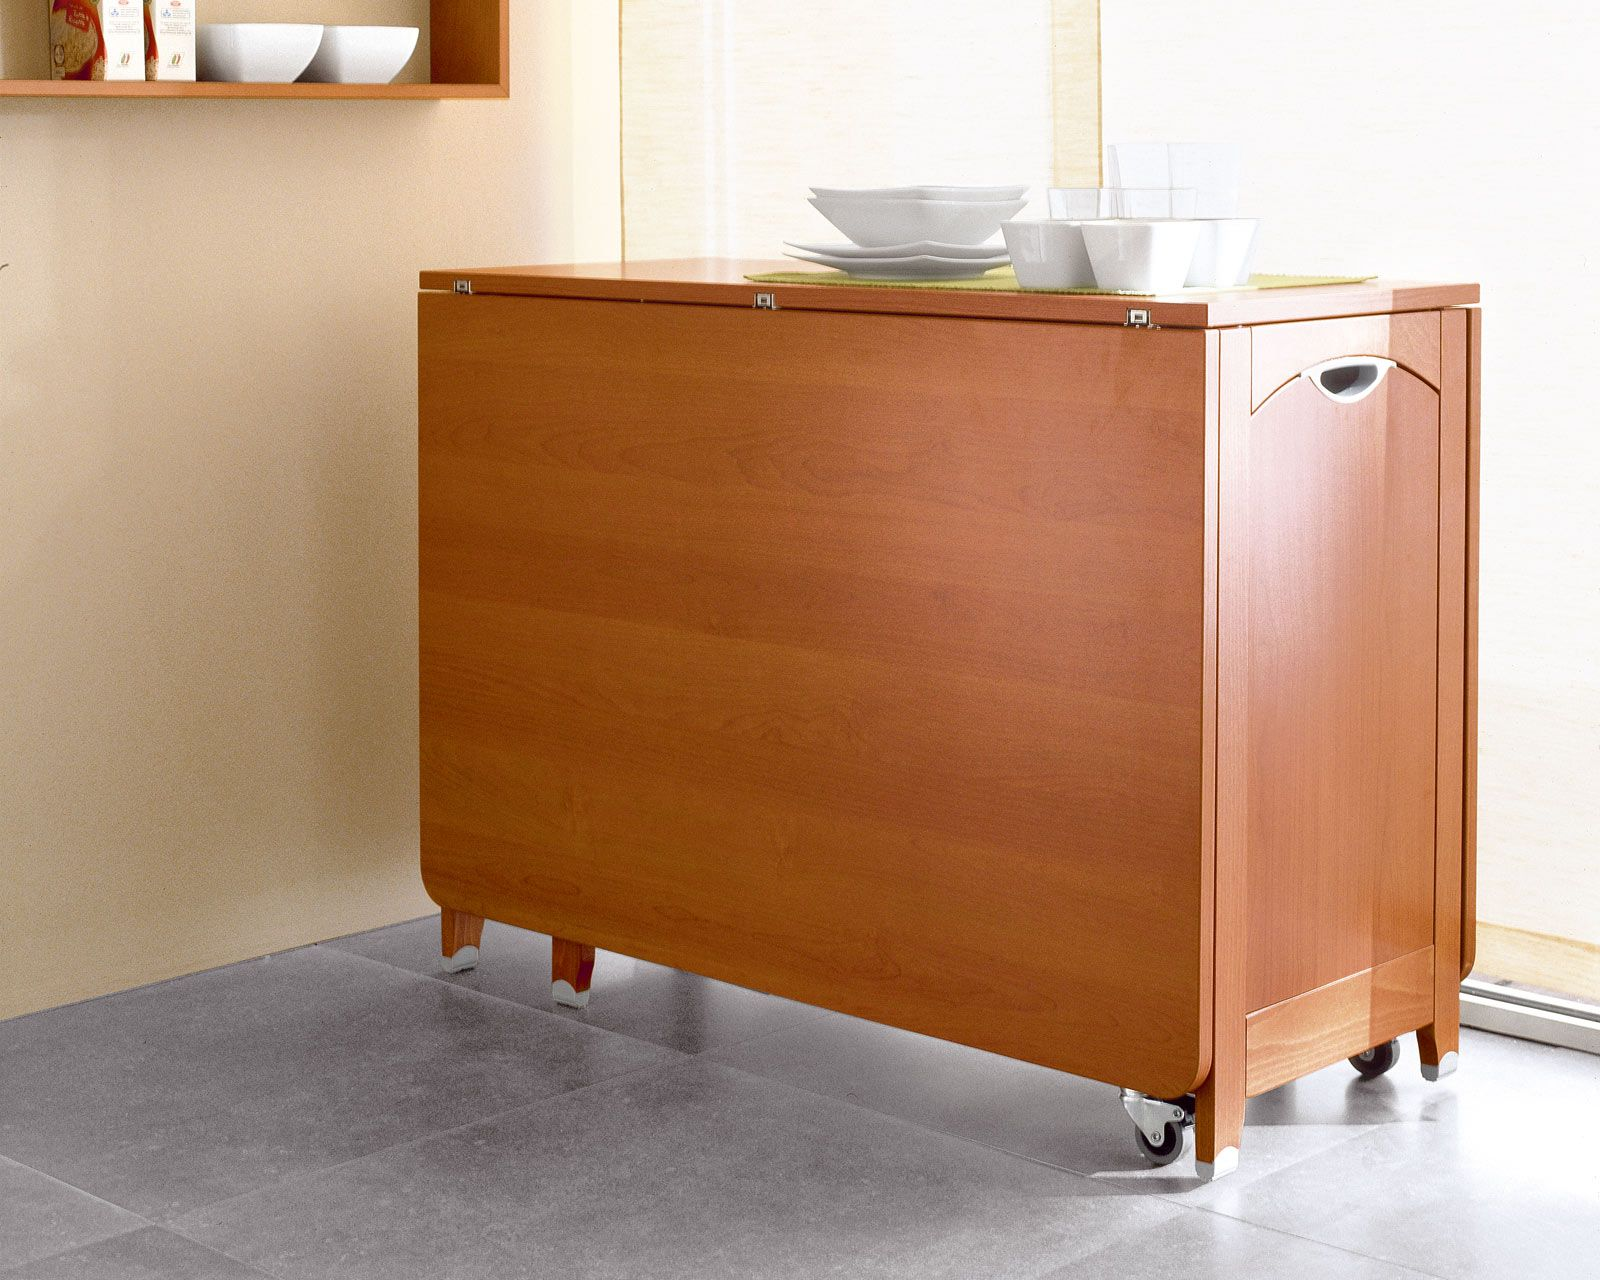 Adorable Drop Leaf Table With Chair Storage Modern Kitchen